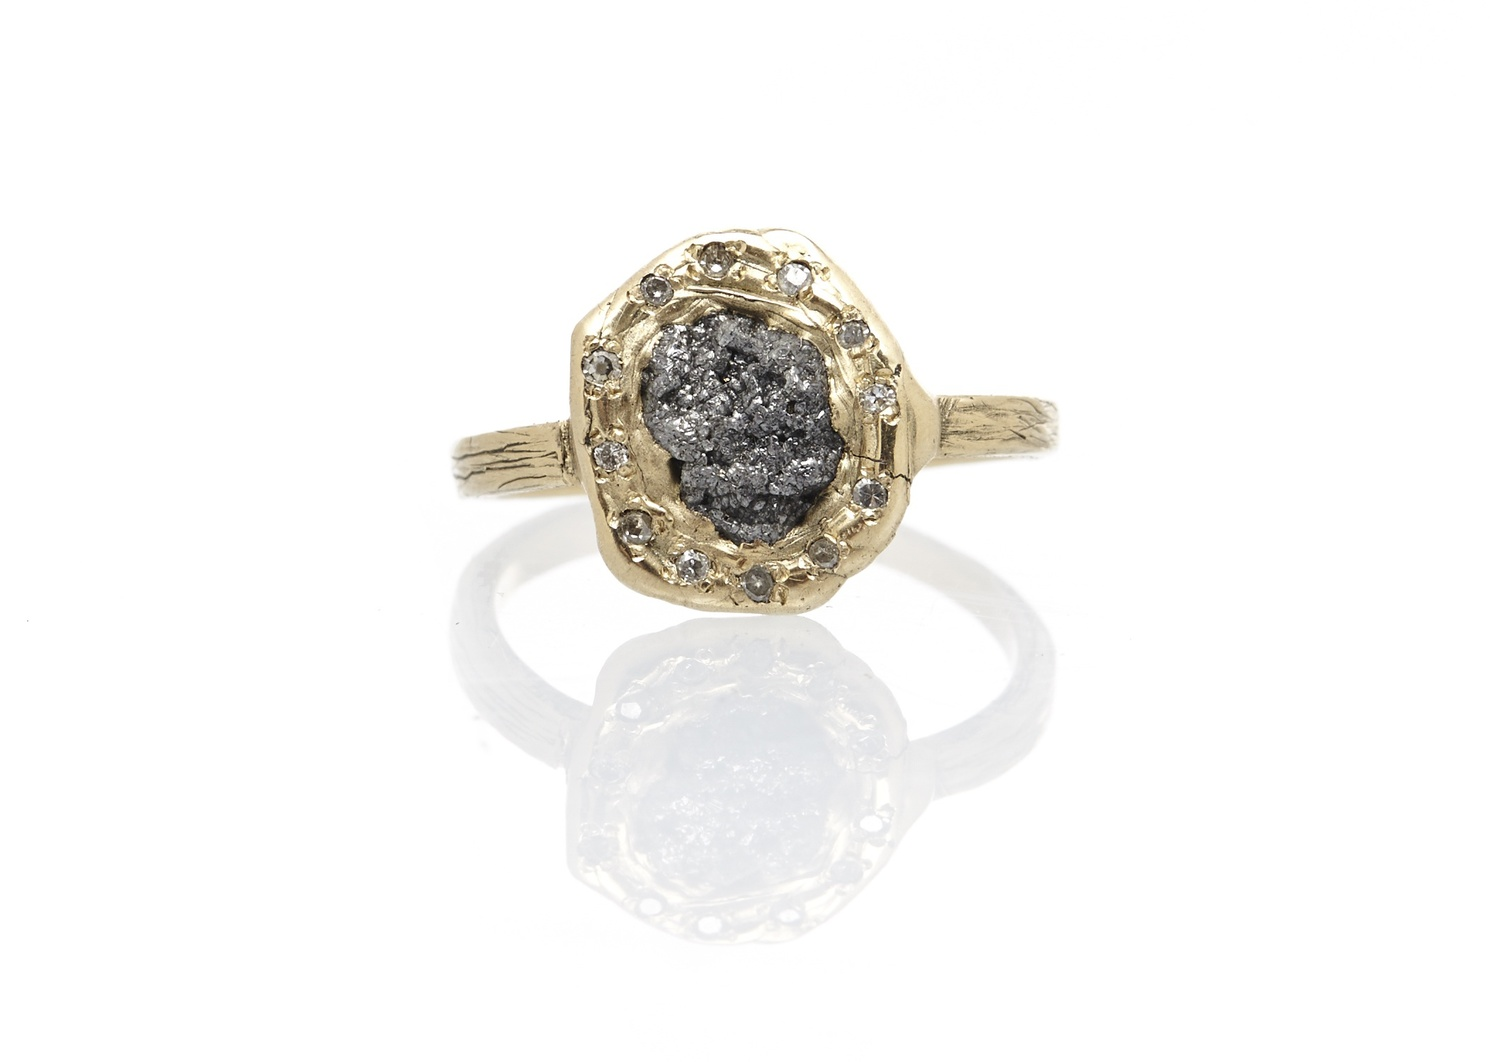 Emilie Shapiro - Rough Diamond Halo Ring $850